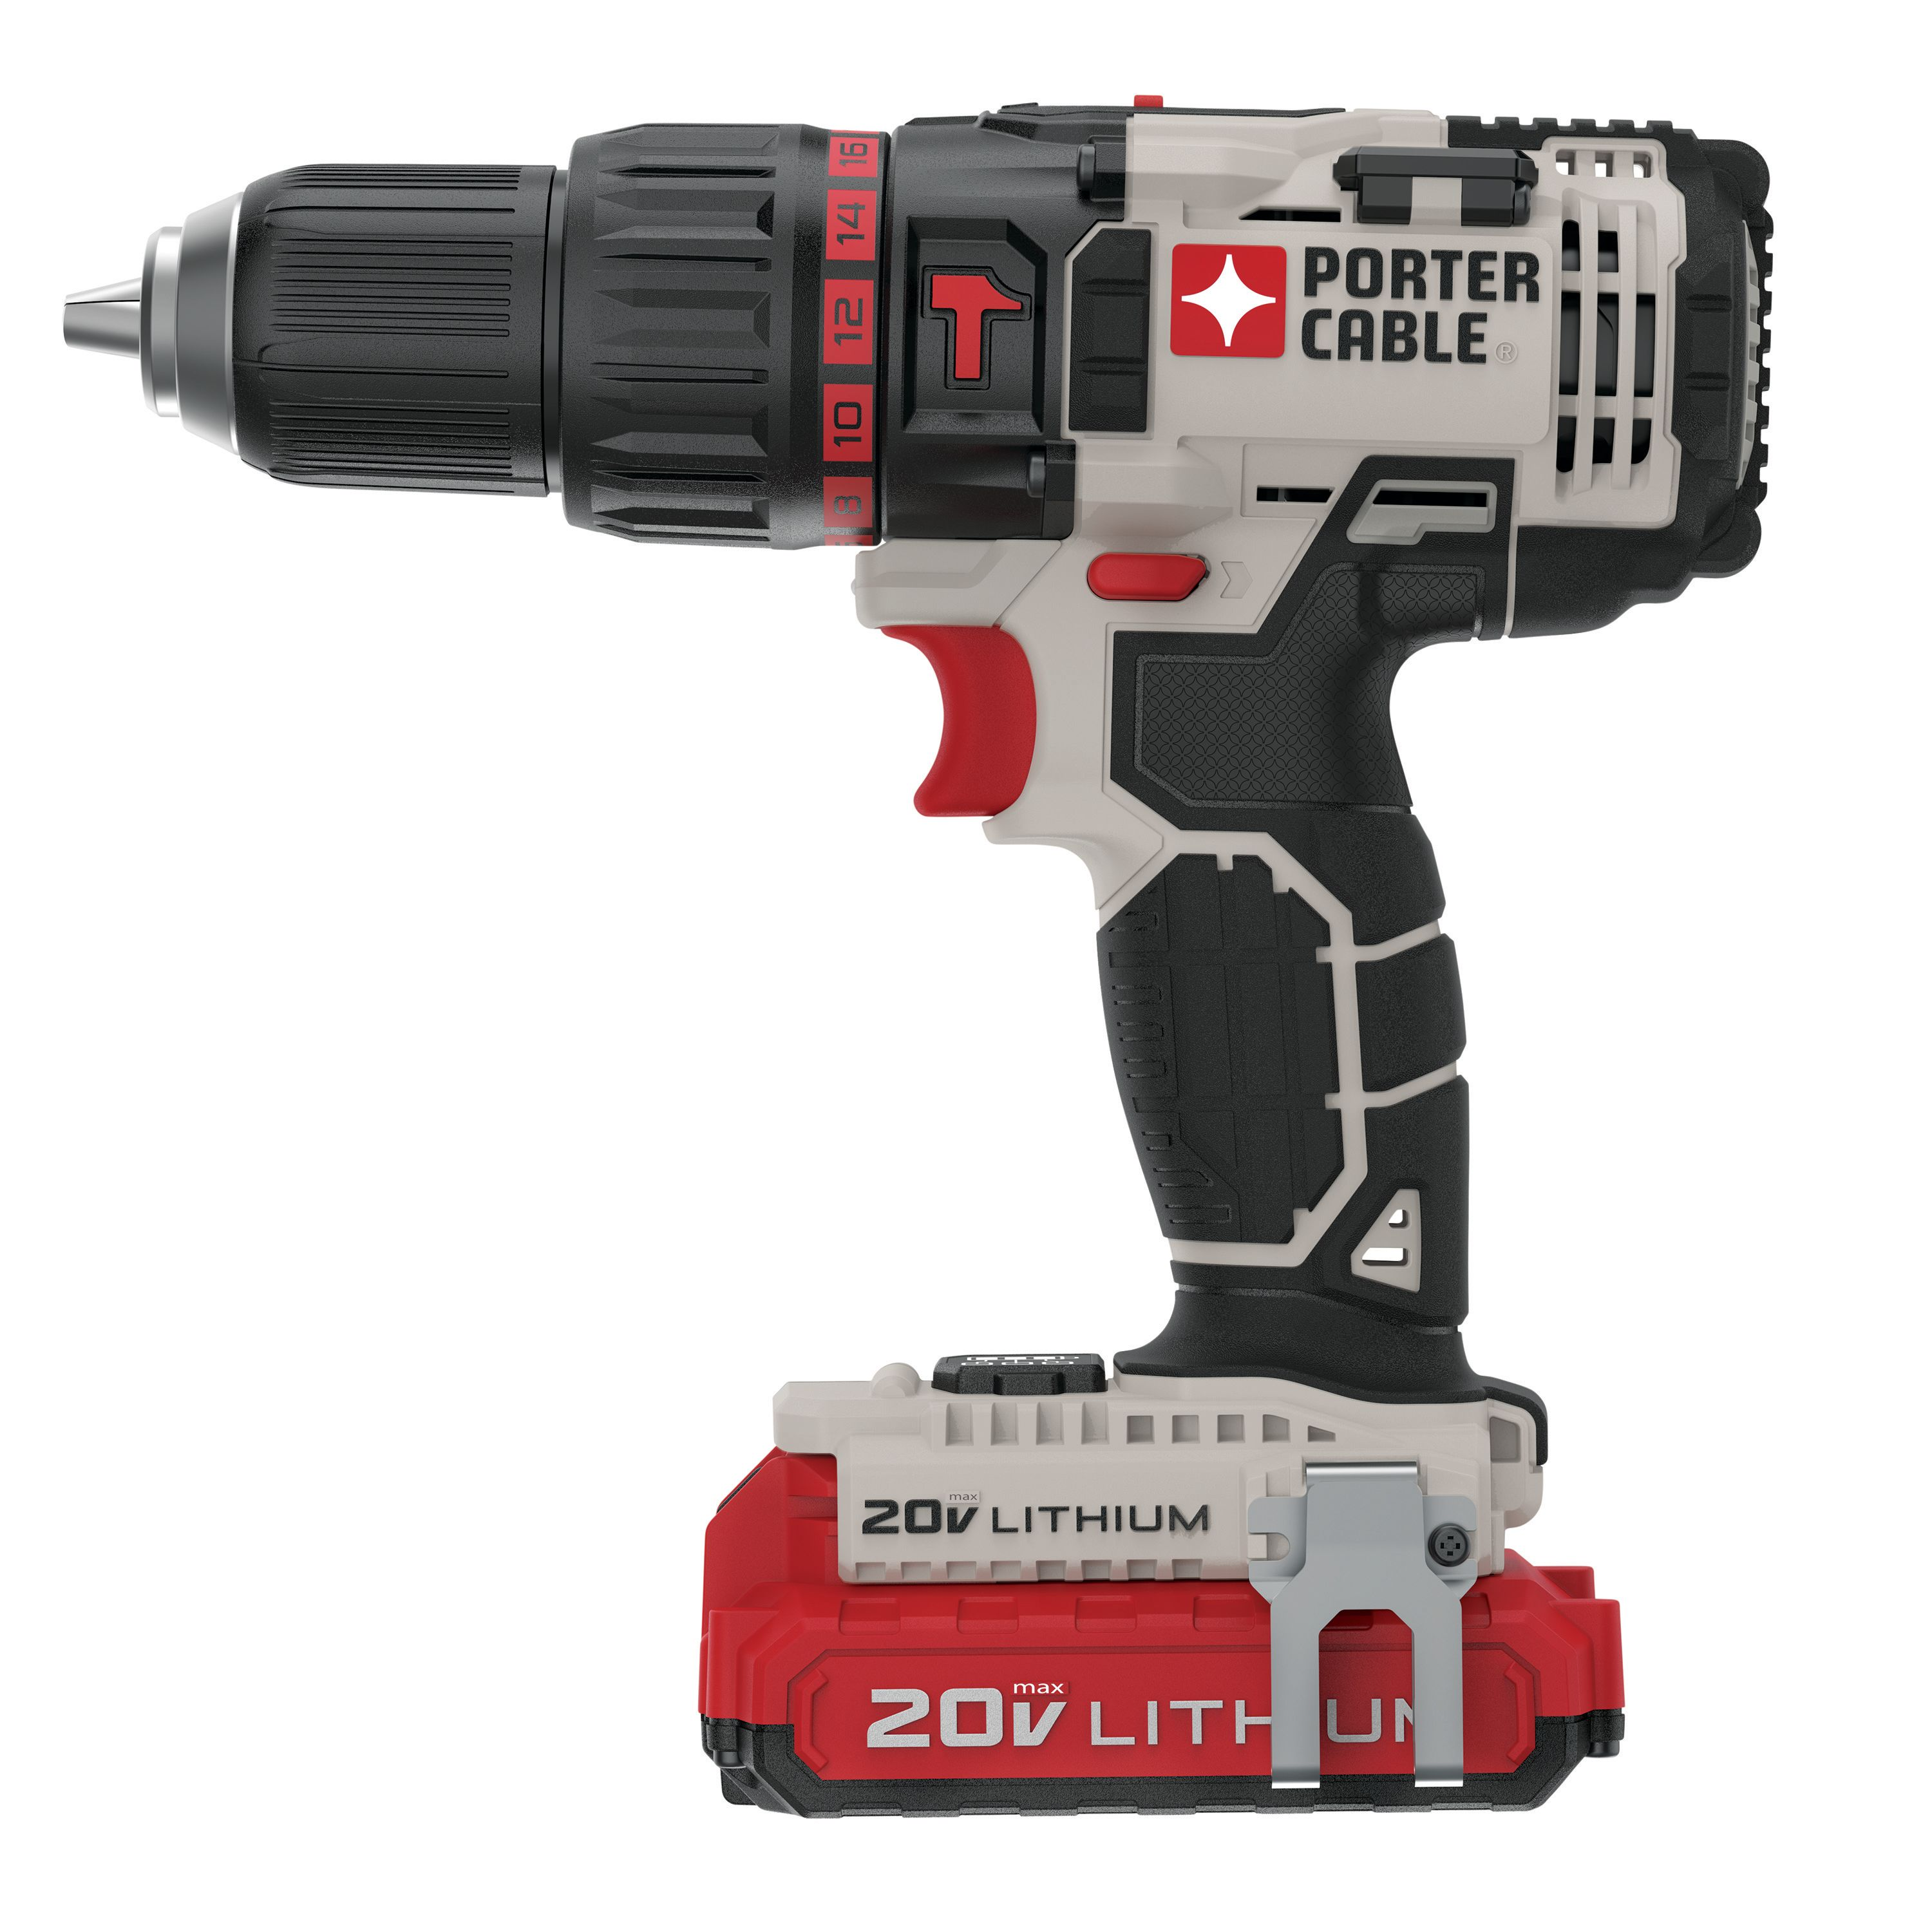 18V CORDLESS LITHIUM RECHARGEABLE COMBI HAMMER DRILL /& SMART CHARGE 3YR WARRANTY